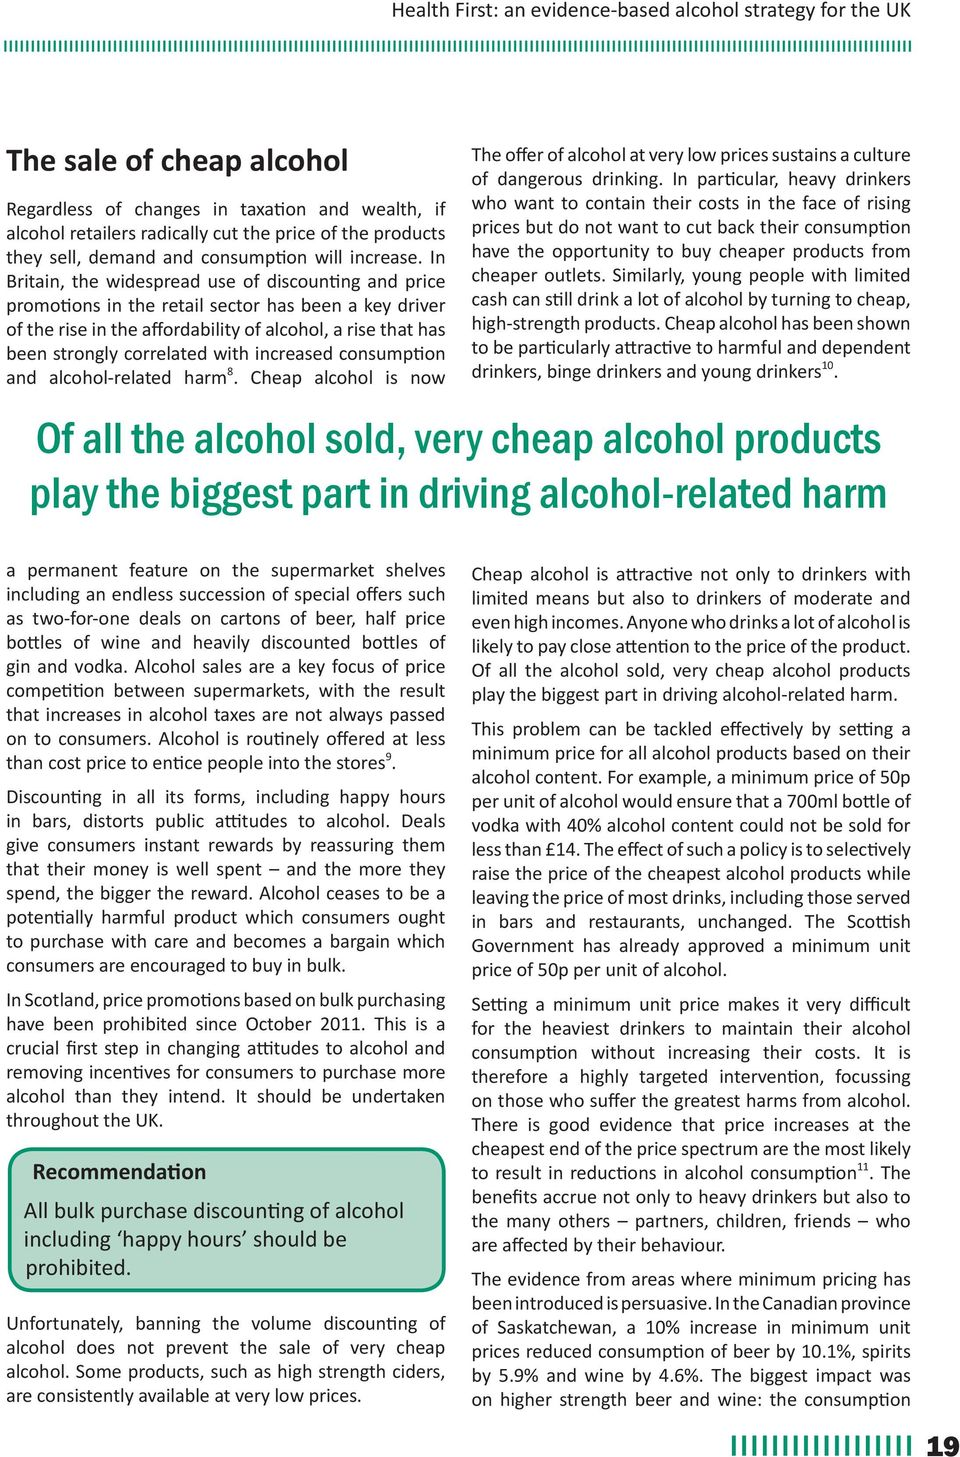 with increased consumption and alcohol-related harm 8. Cheap alcohol is now The offer of alcohol at very low prices sustains a culture of dangerous drinking.